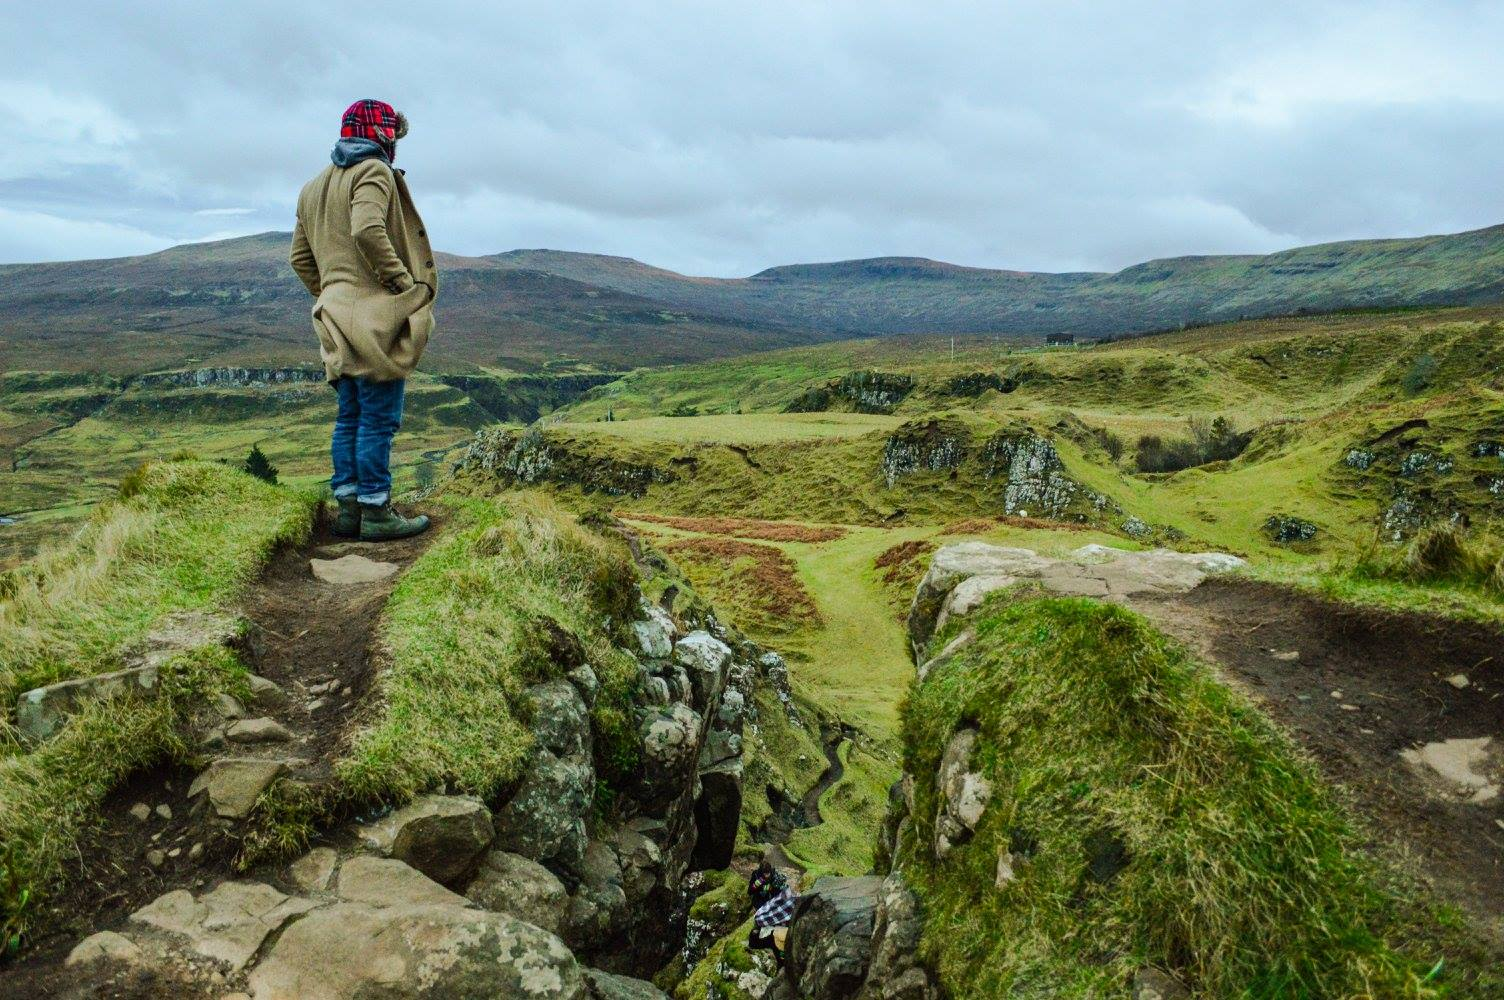 21640953 10159332725025297 248599022103496431 o 1024x681 - Sightseeing From a Fairy Tale: The Best Spots in Scotland